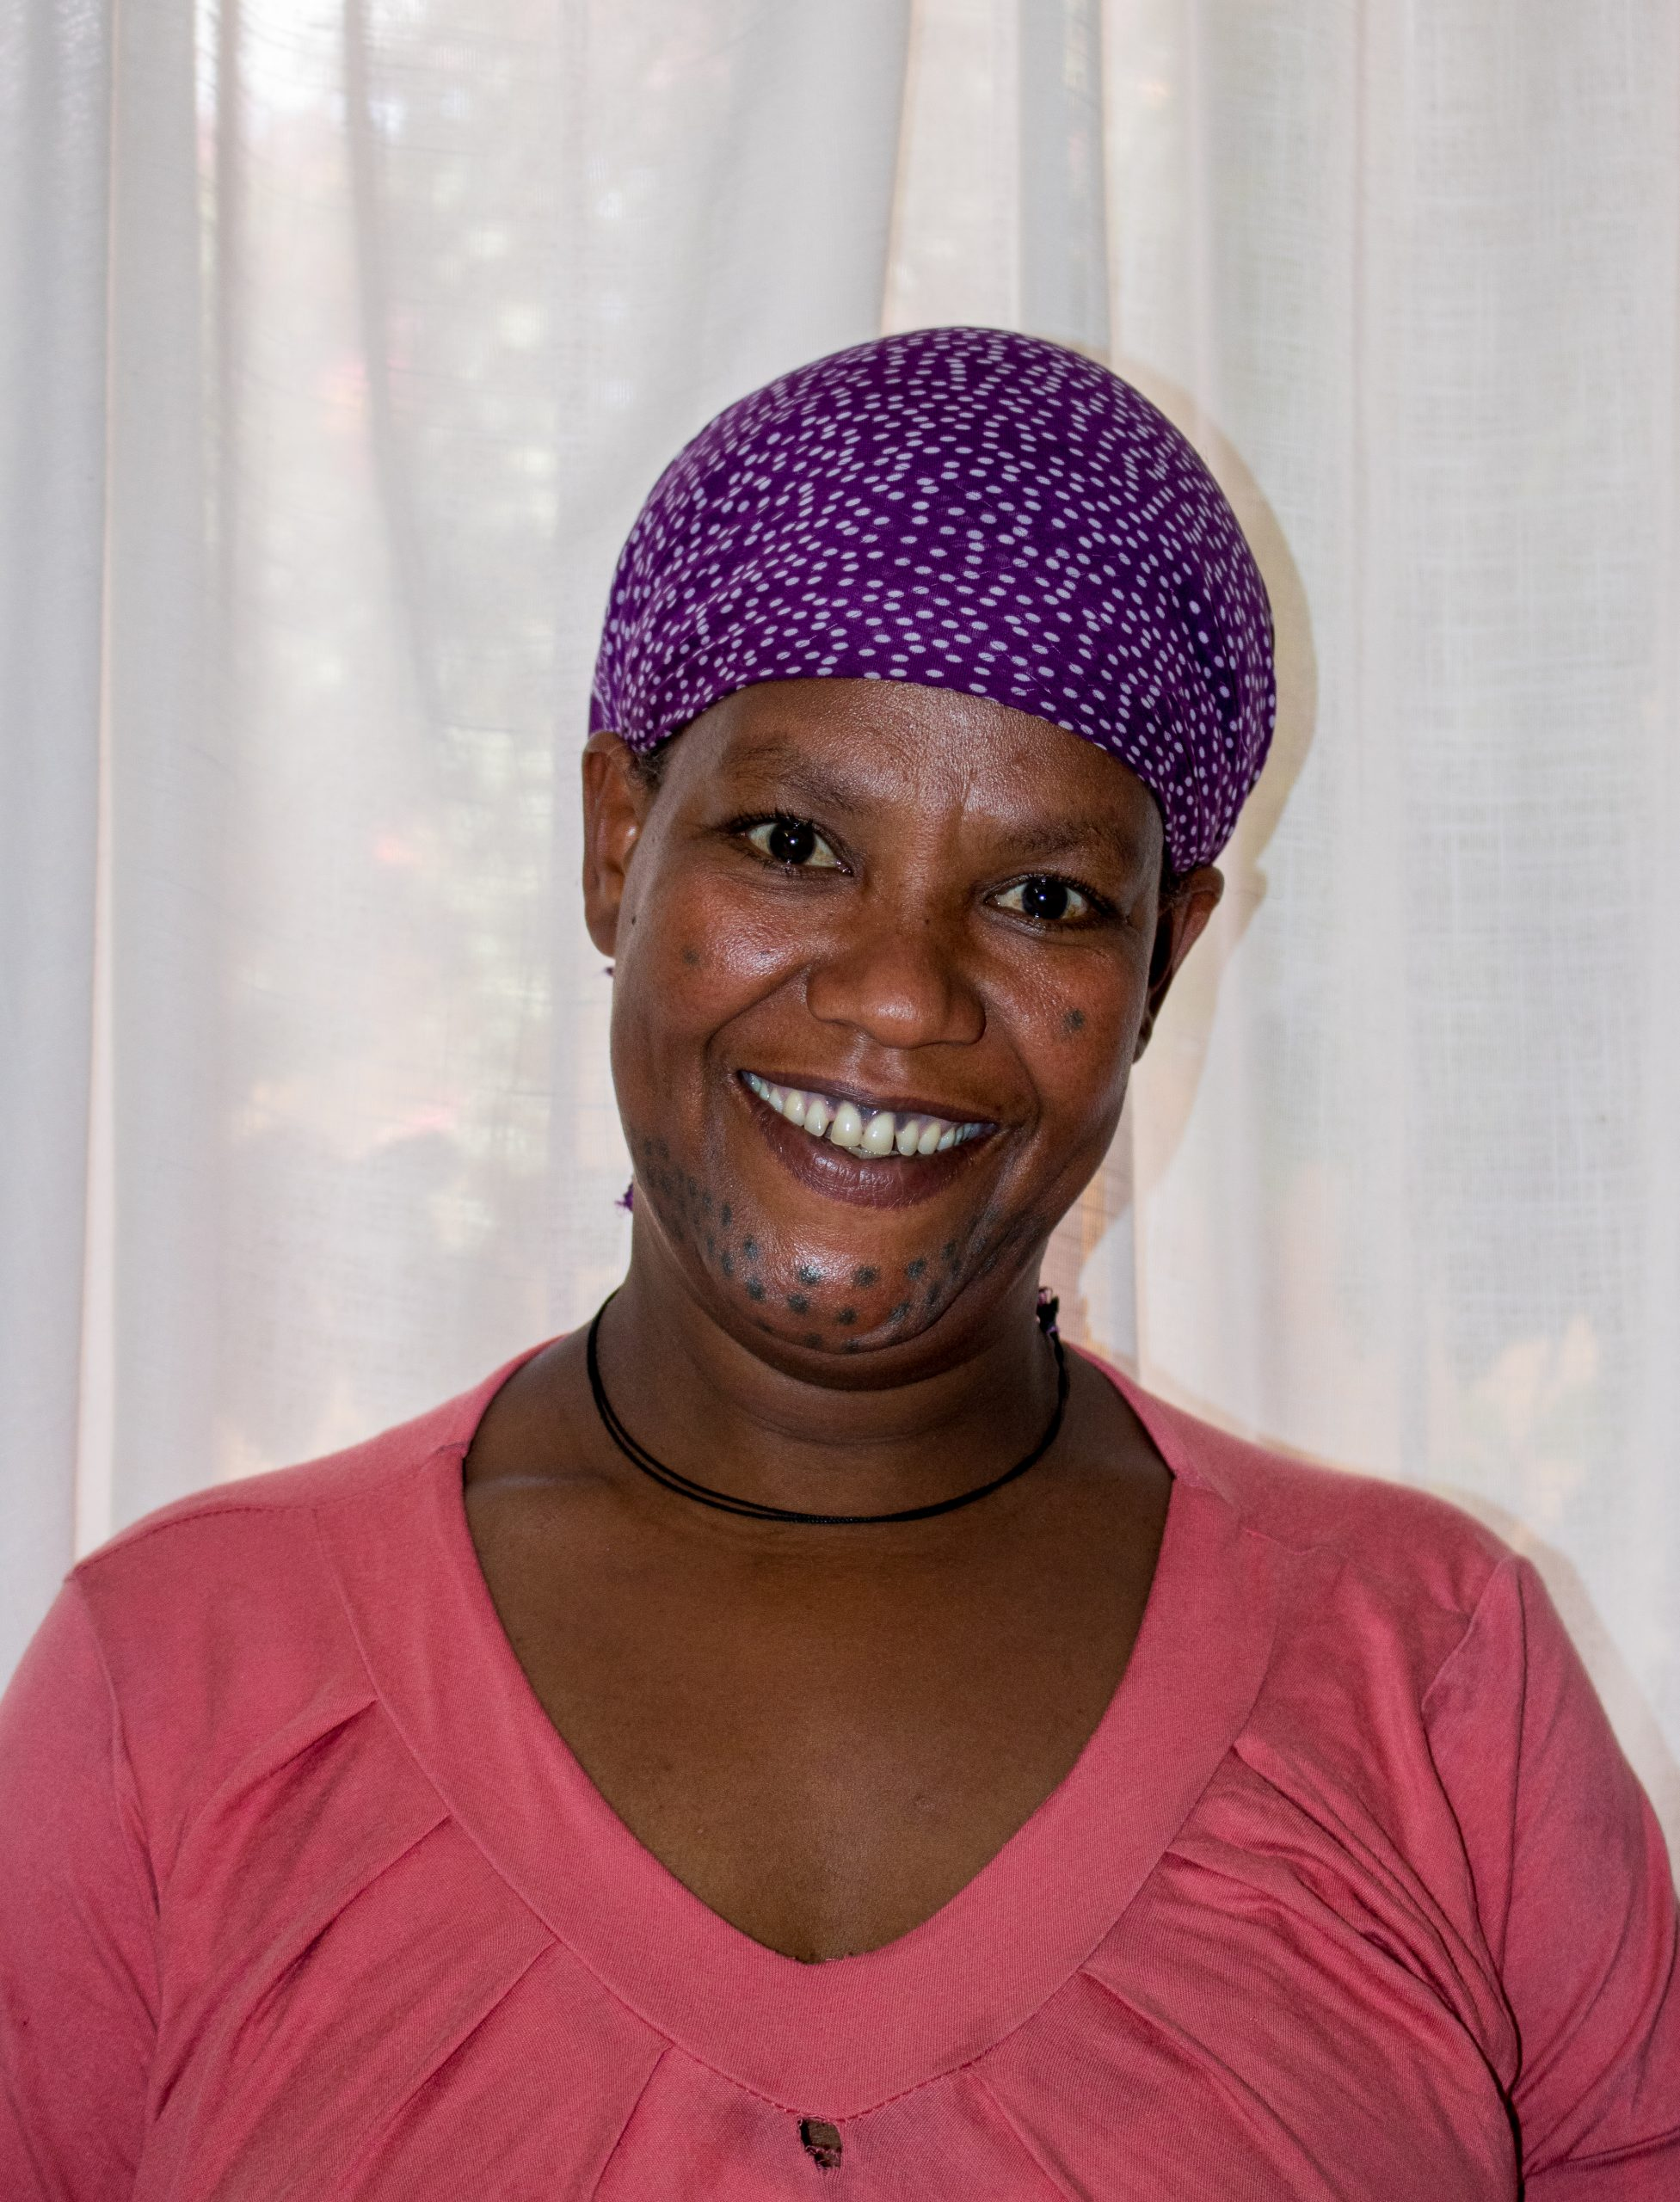 Meet Emebet: Thanking God for the opportunity of living a better day!